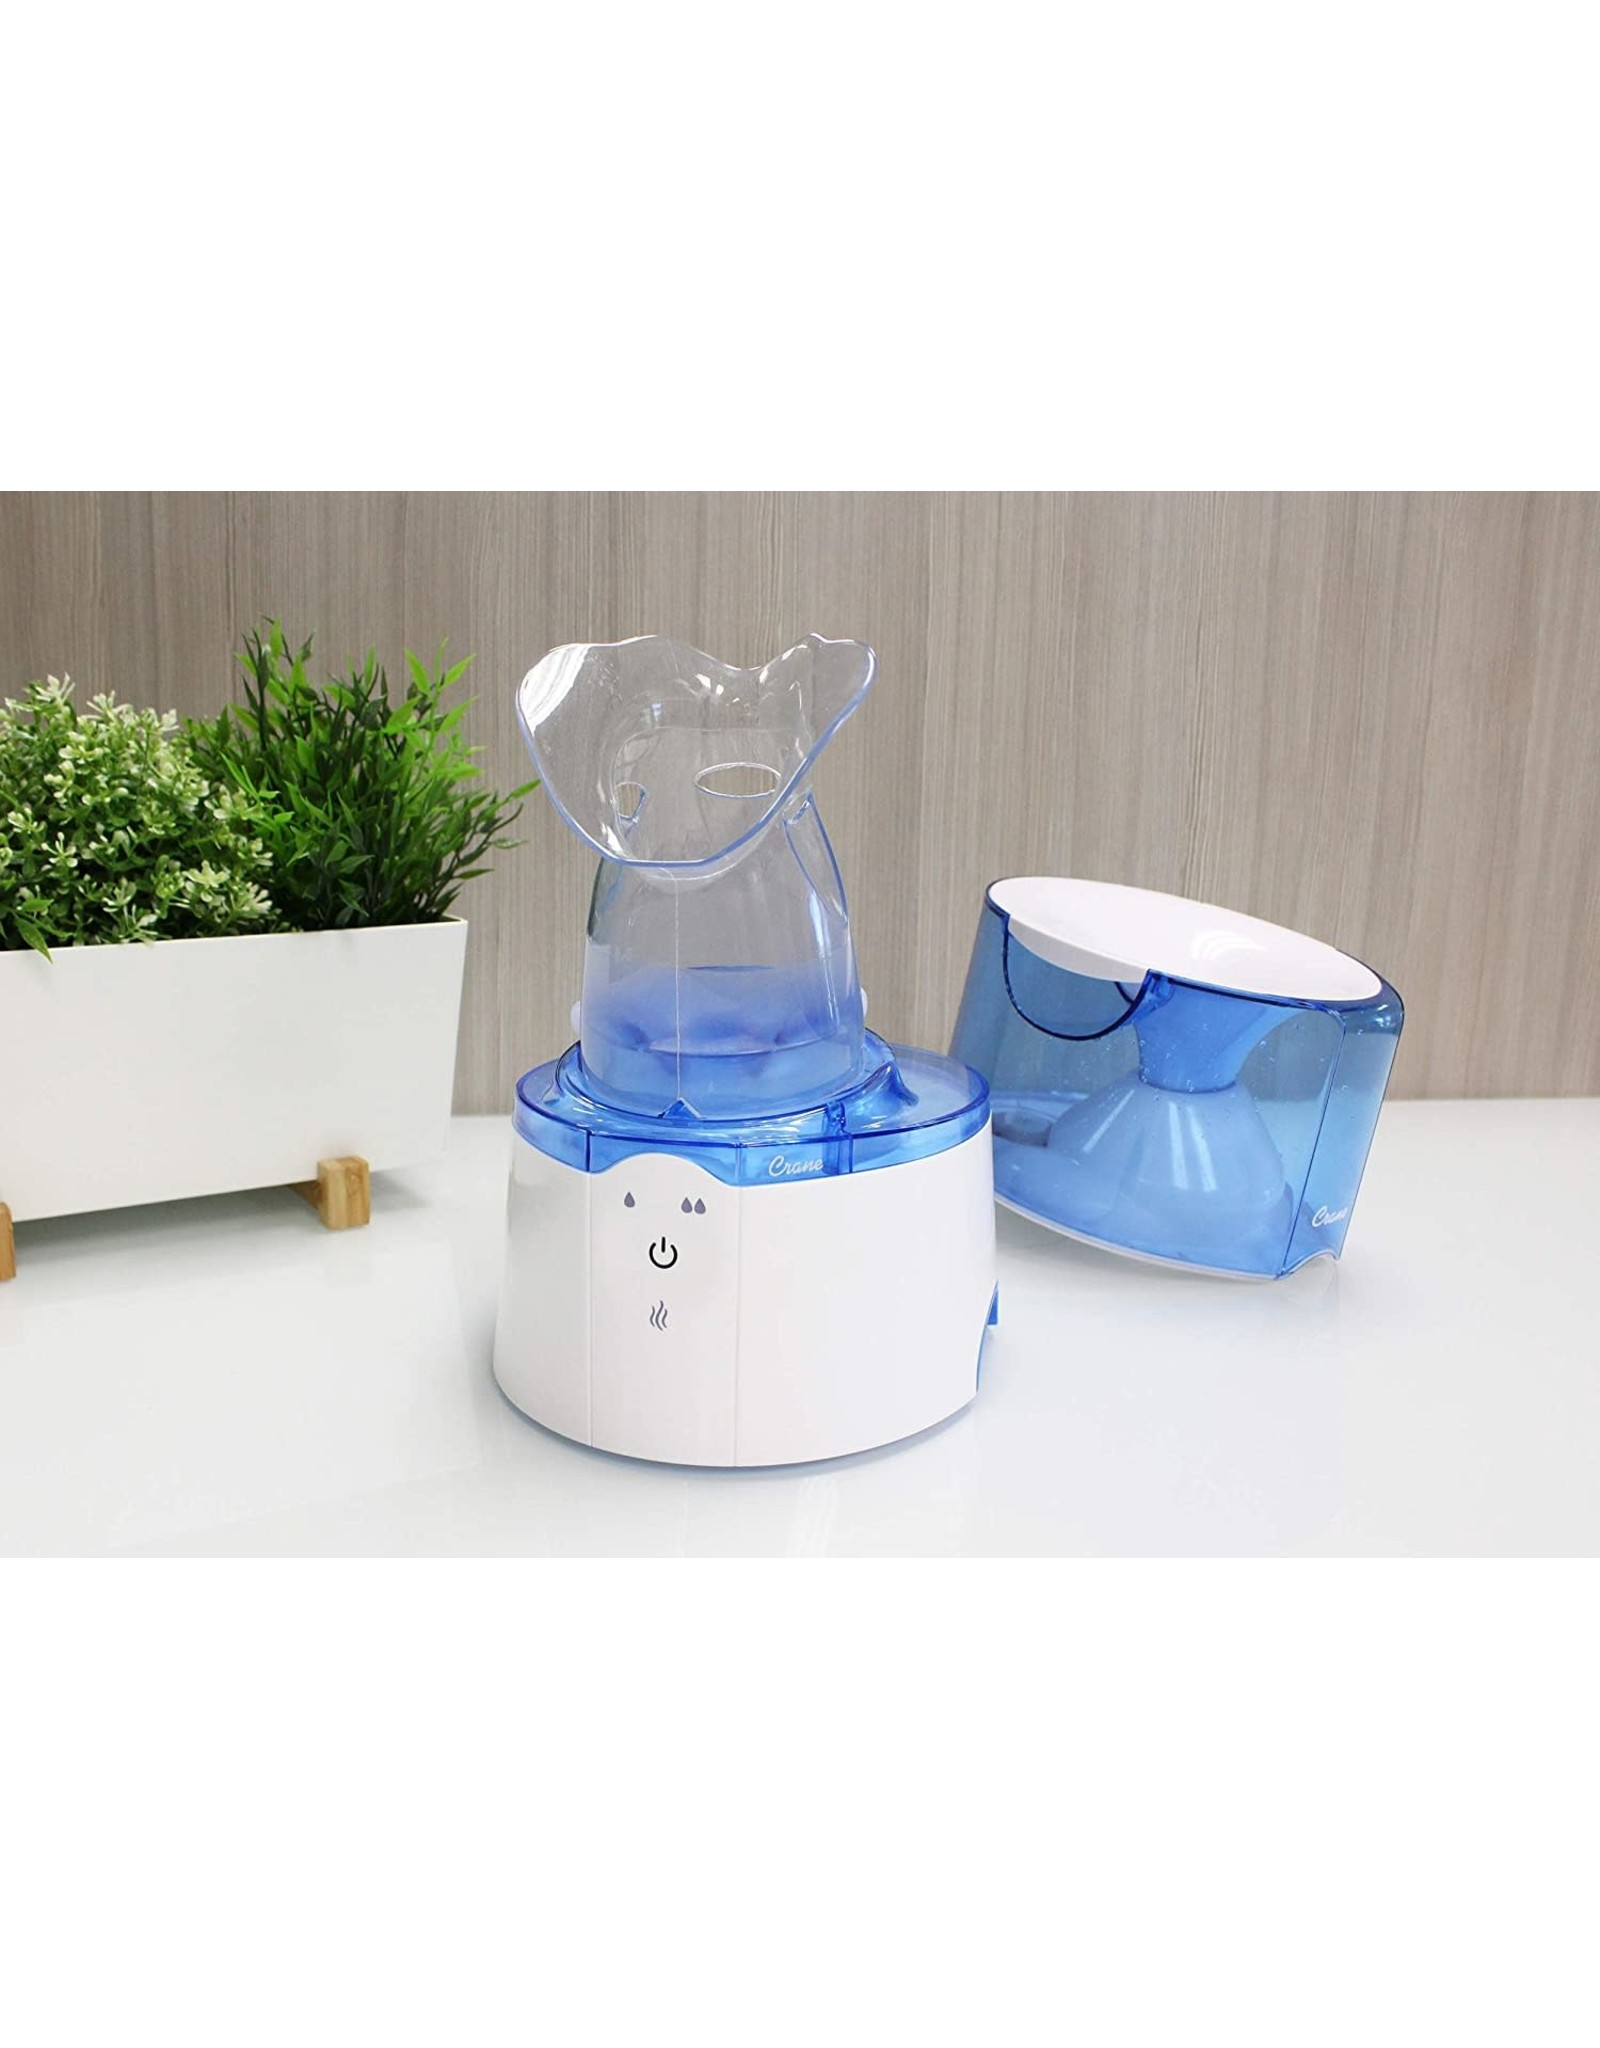 Crane Crane 2 in 1 Personal Steam Inhaler & Warm Mist Humidifier, 0.5 Gallon, Filter Free, Whisper Quite, Germ Free Mist, for Home Bedroom and Office, FSA Elidable, Blue & White